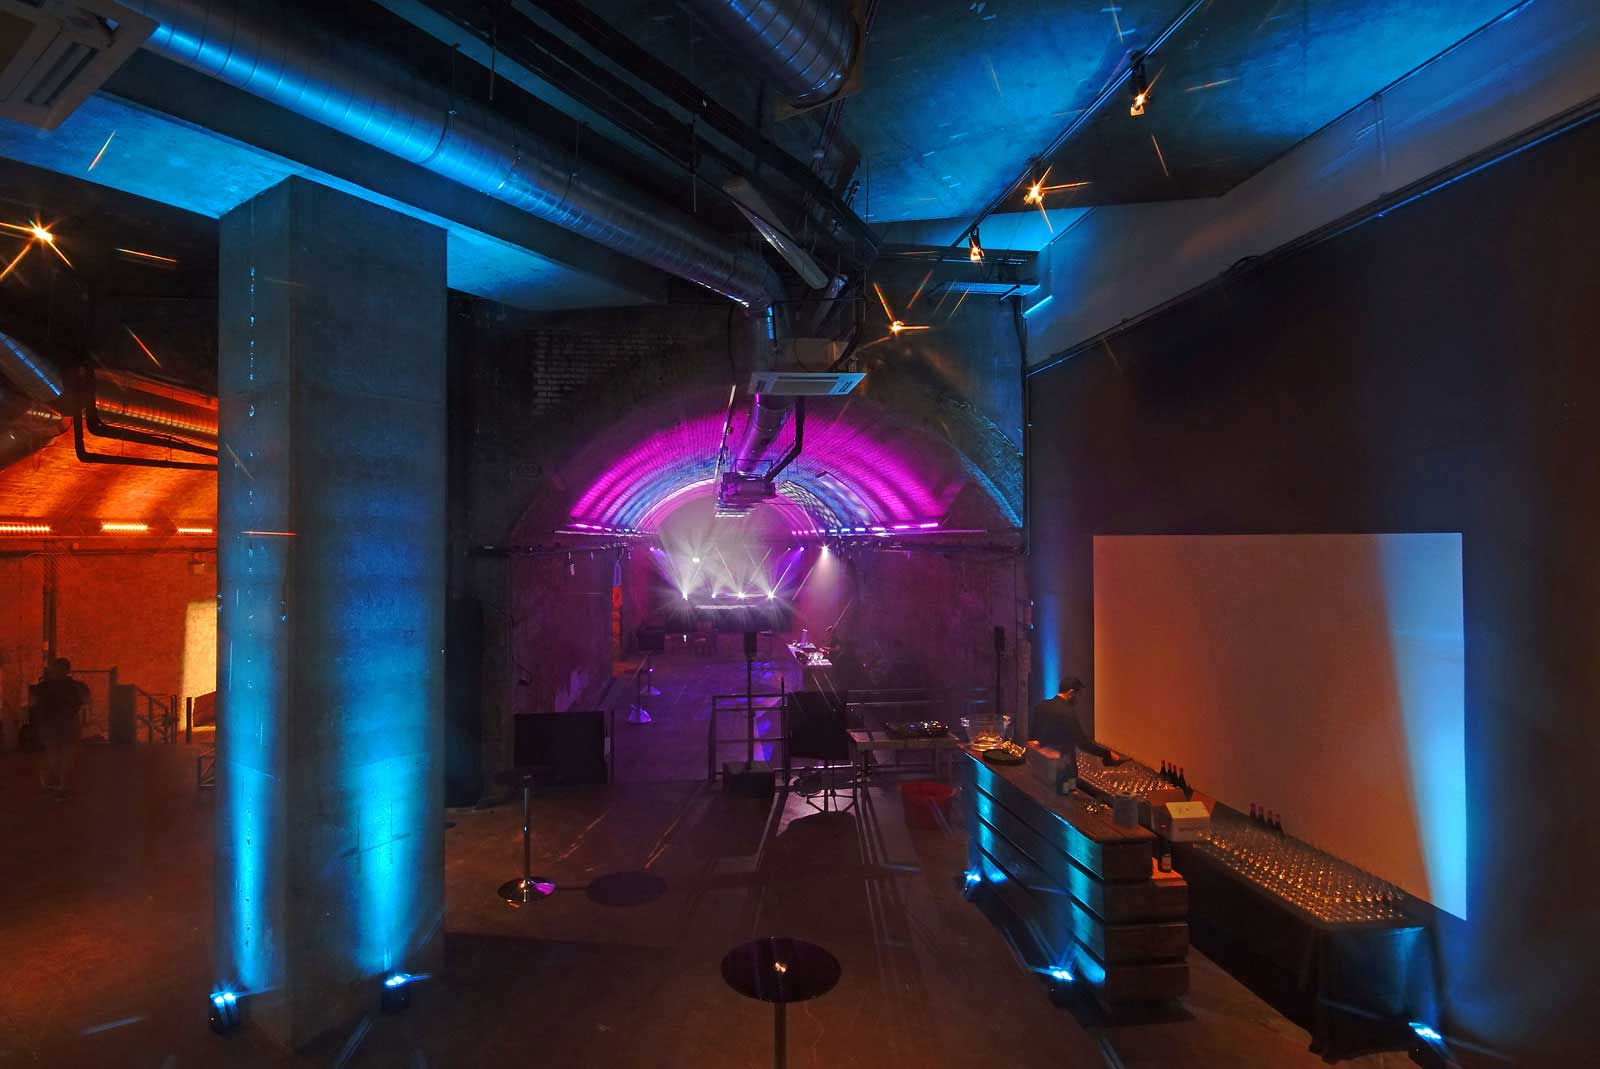 London South Bank Event Venue represented for event hire by VenuesLDN.co.uk